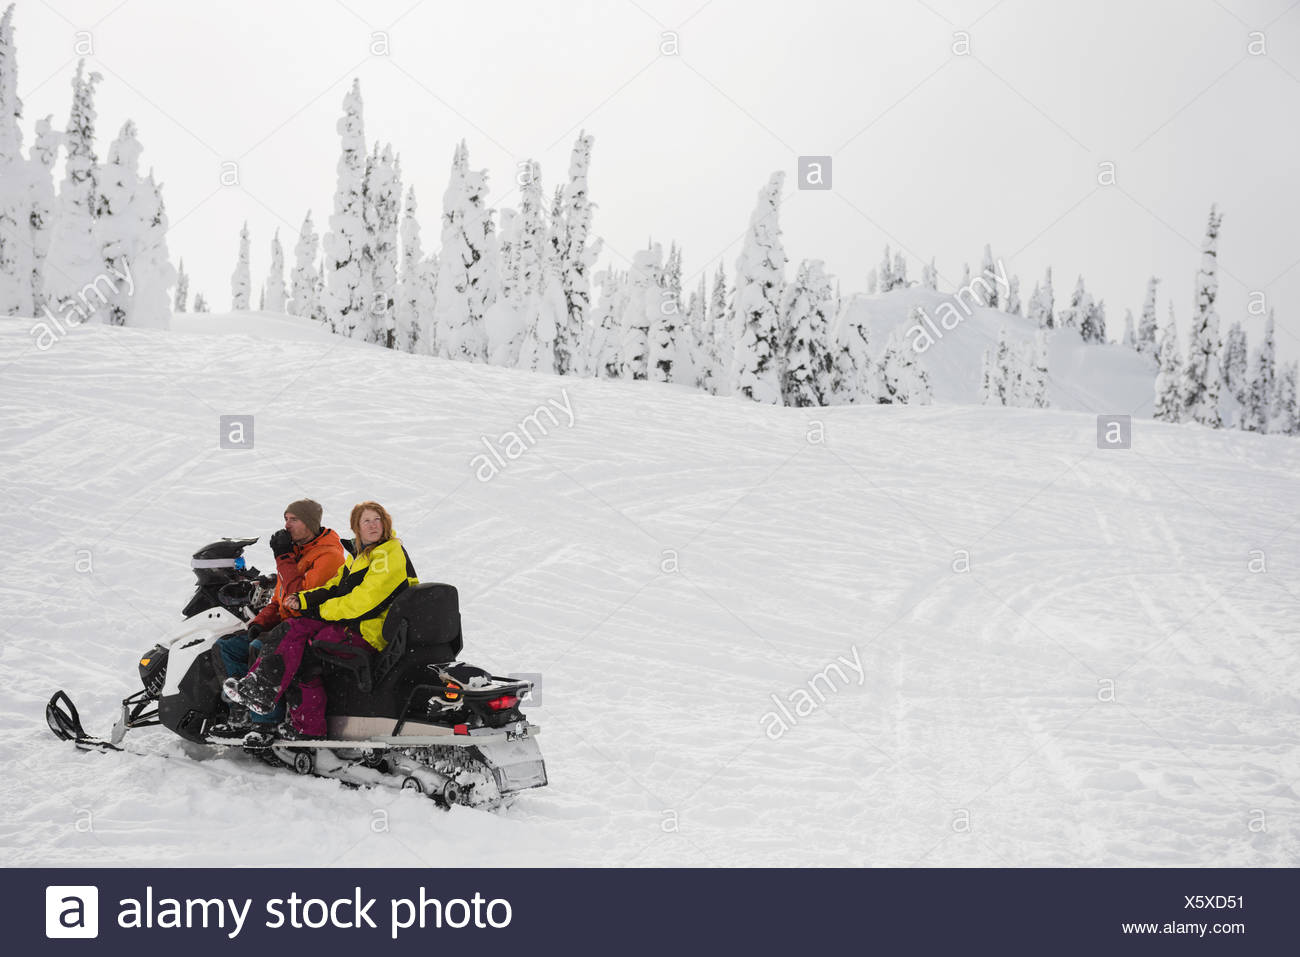 Couple sitting together on snowmobile during winter - Stock Image